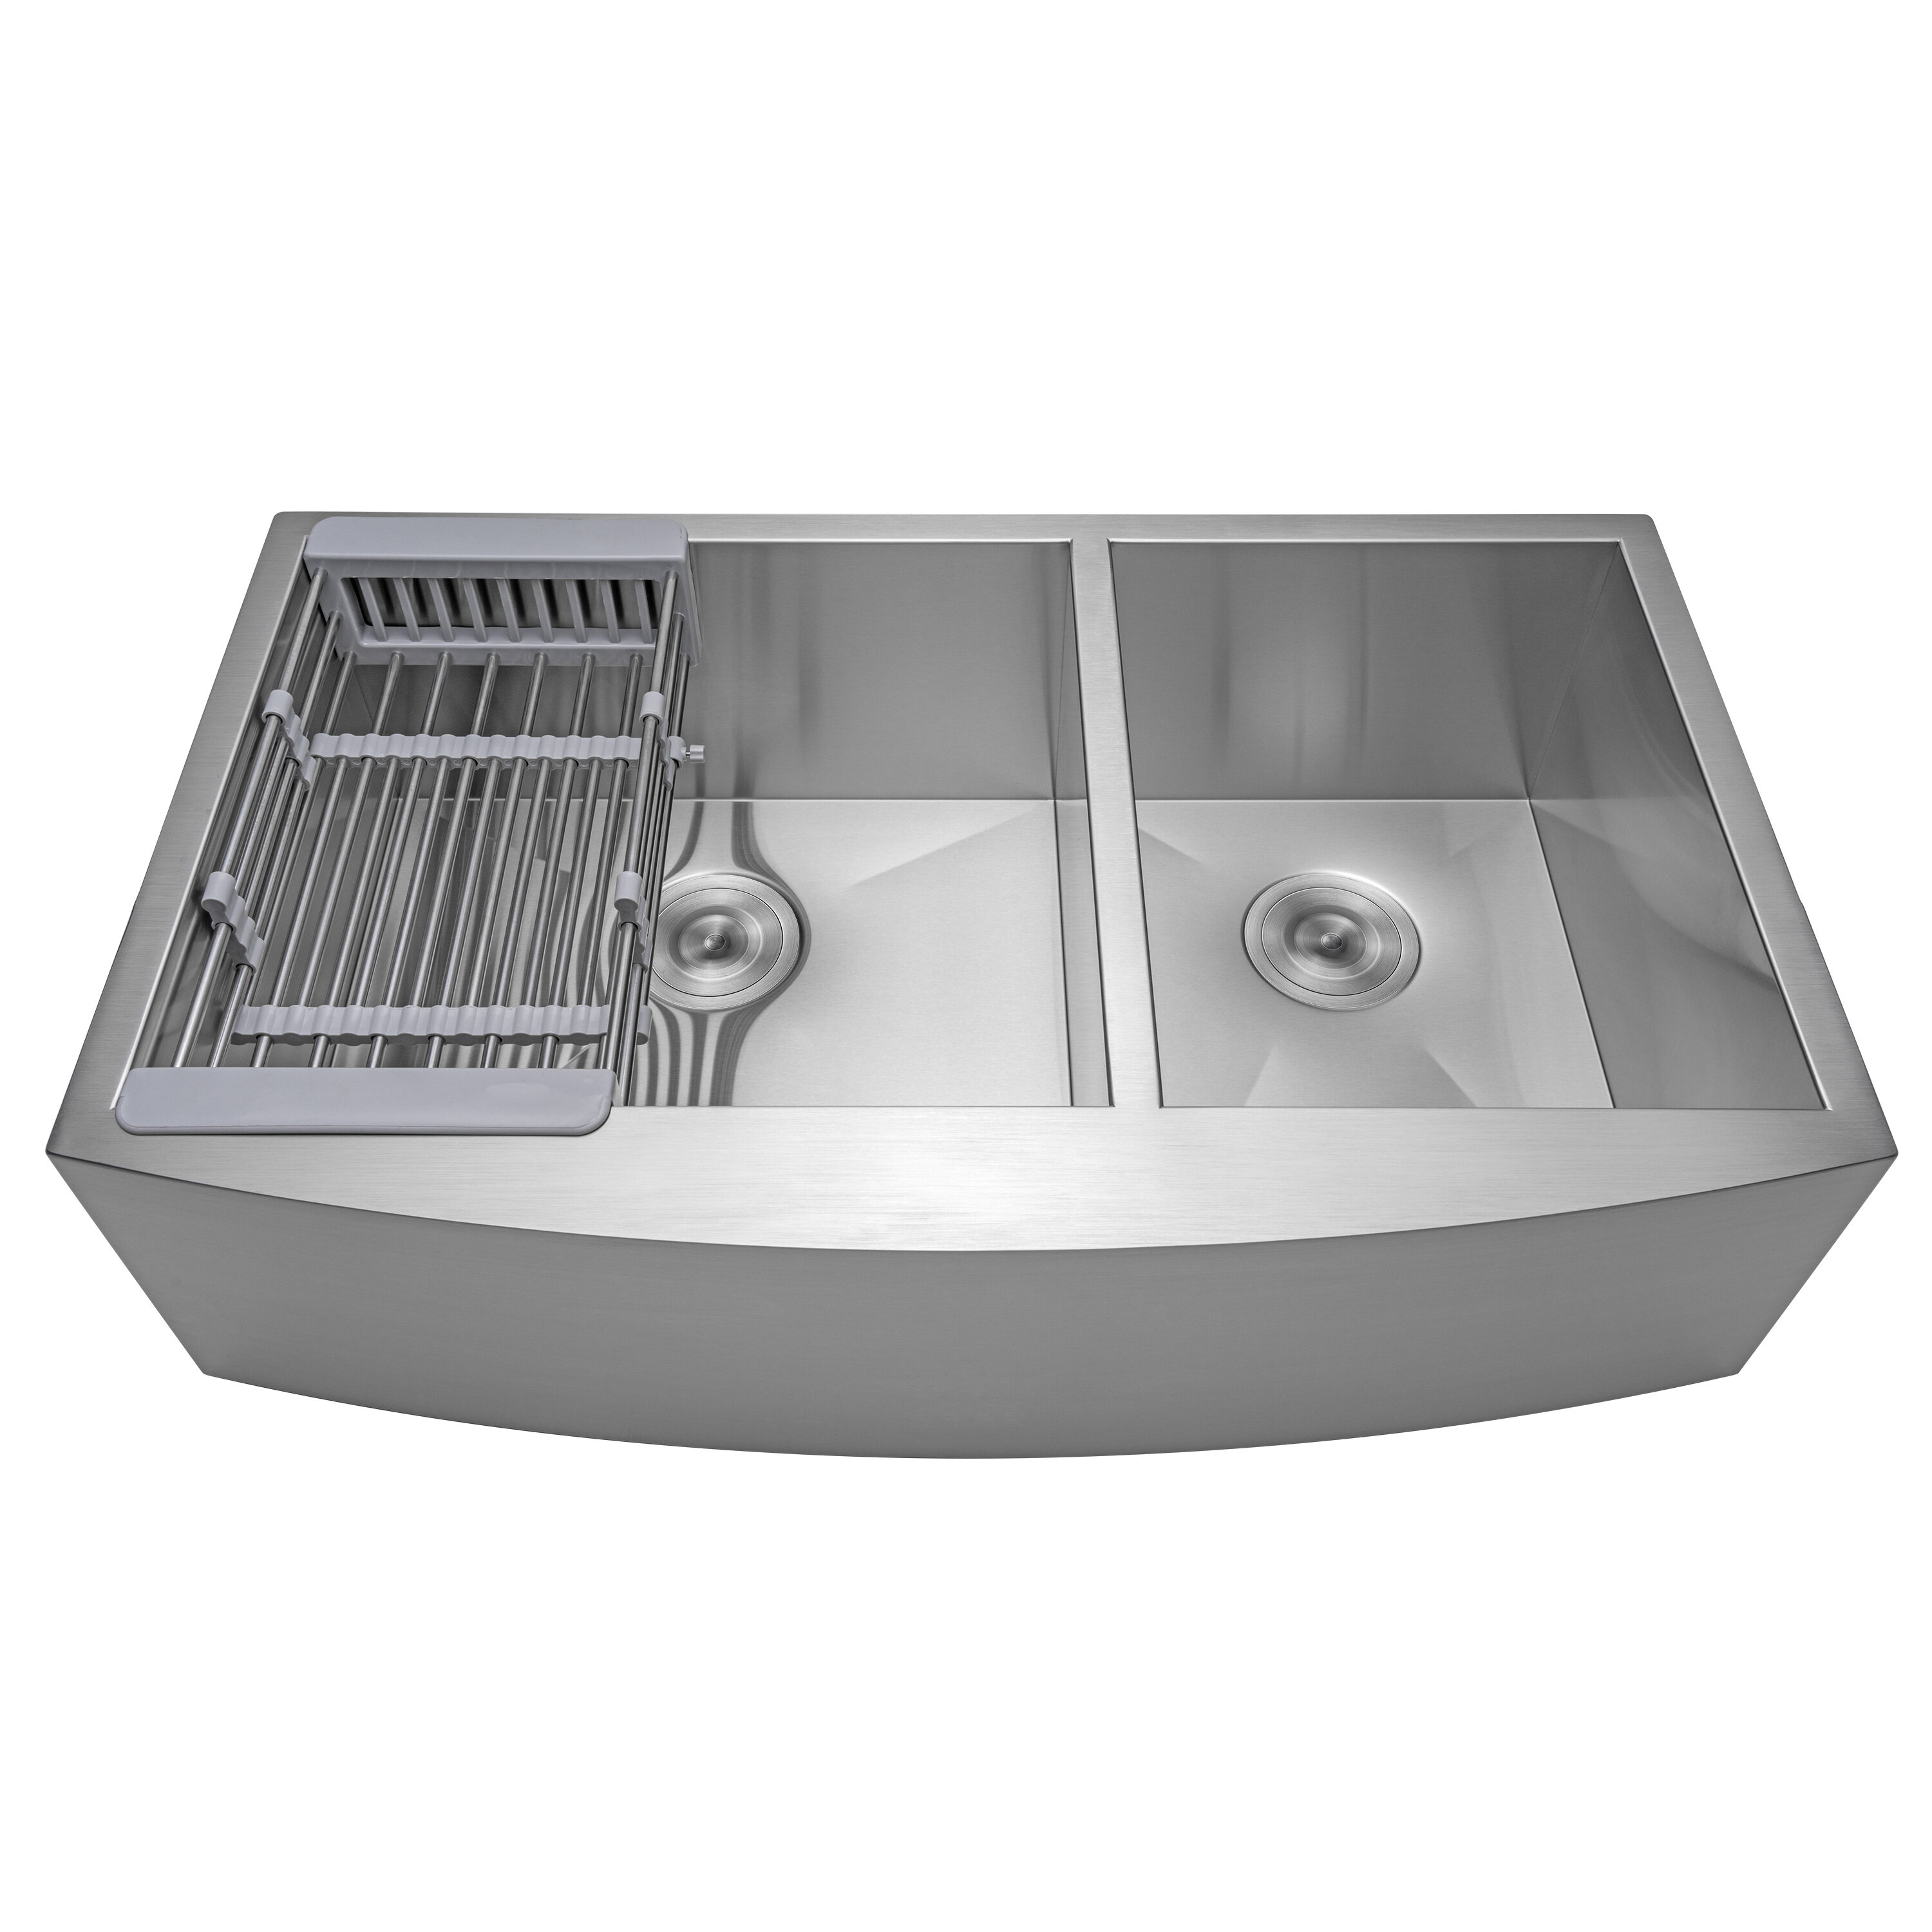 Akdy 33 L X 22 W Farmhouse Apron Kitchen Sink With Basket Strainer And Drain Assembly Reviews Wayfair